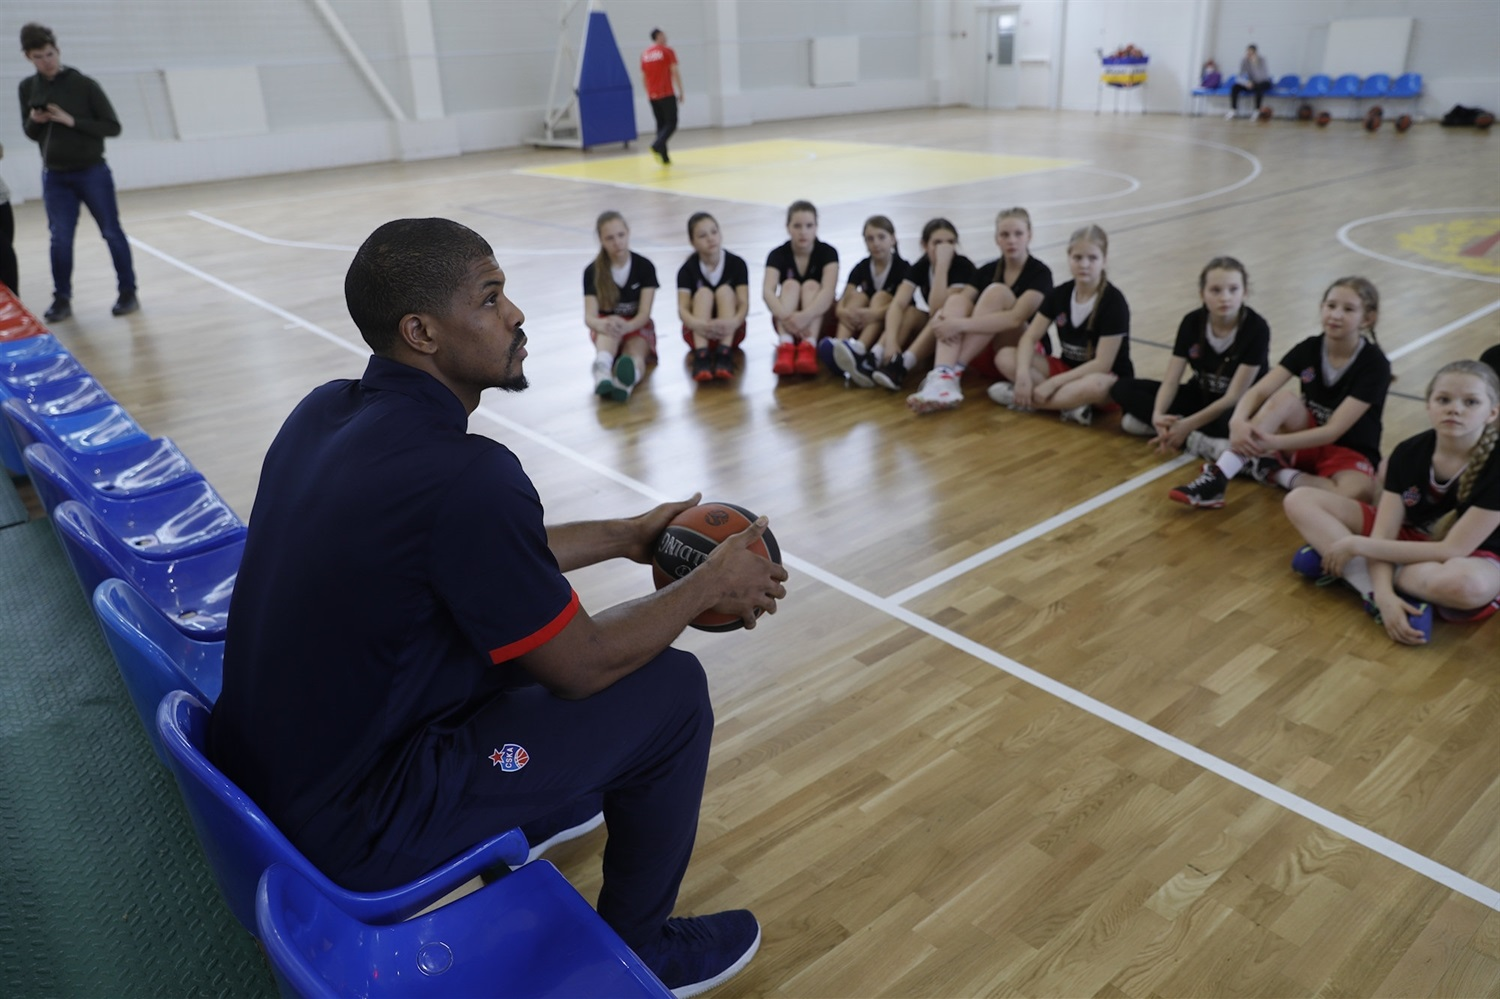 Kyle Hines - One Team session in Moscow - CSKA Mosocw (photo CSKA) - EB18